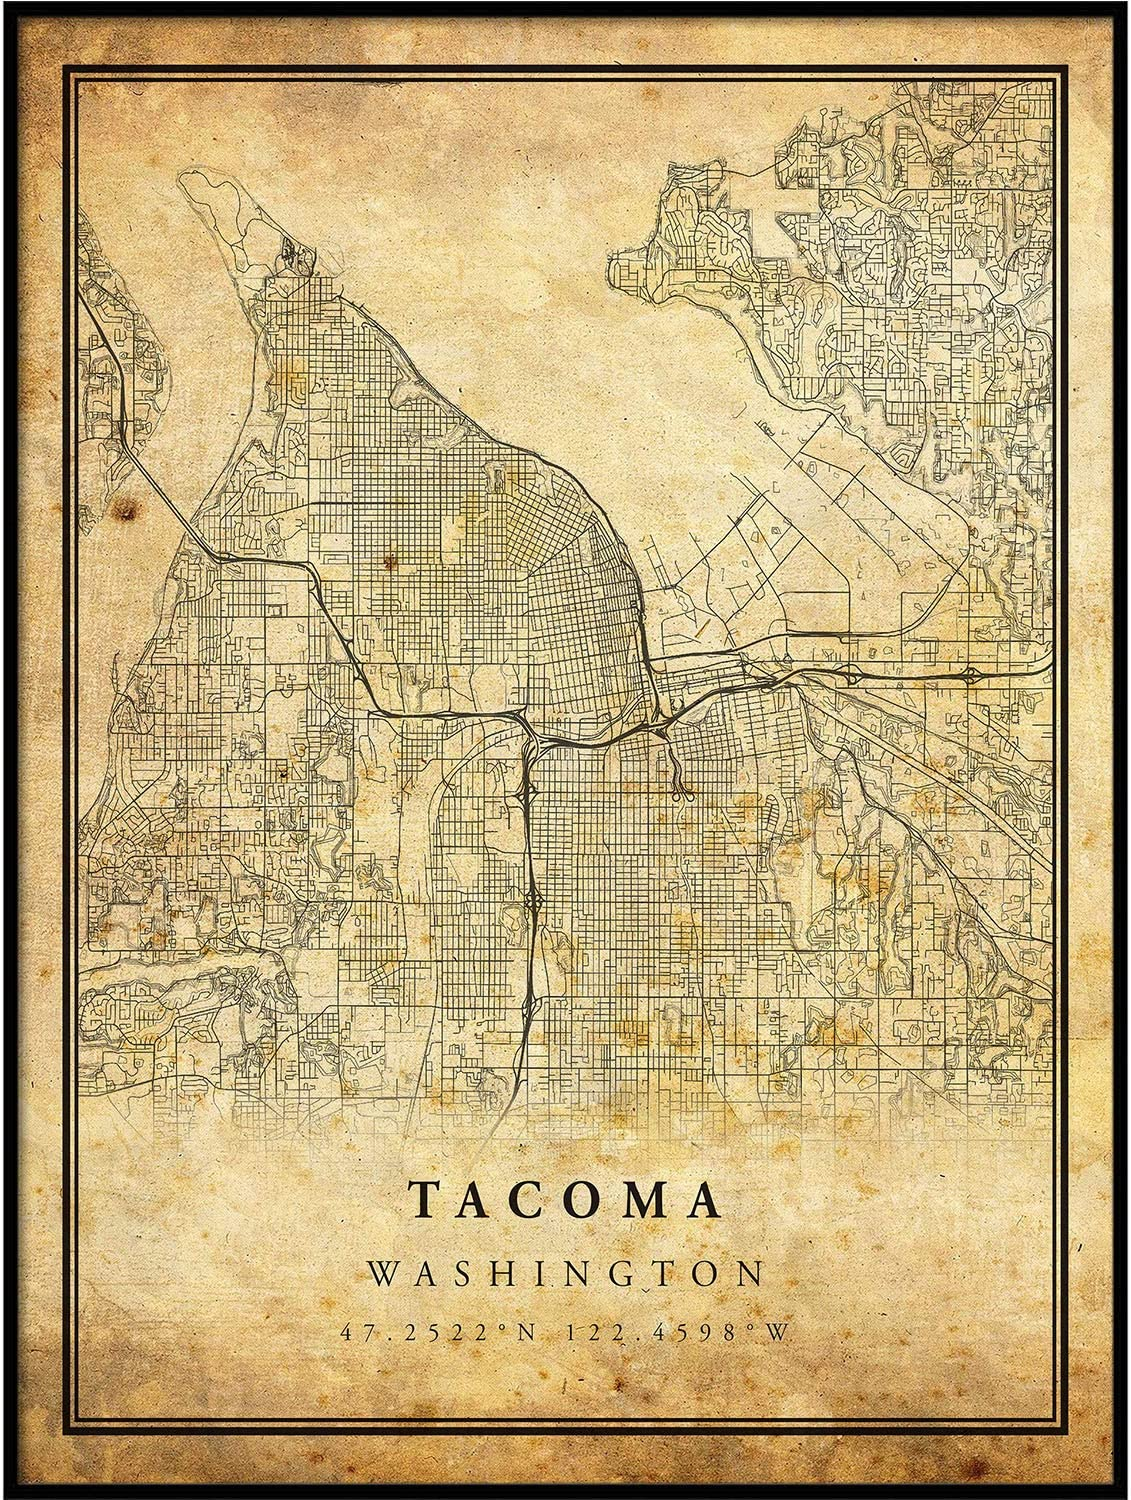 Tacoma Map Vintage Style Poster Print Old City Artwork Prints Antique Style Home Decor Washington Wall Art Gift Map Wedding Gift 24x36 Posters Prints